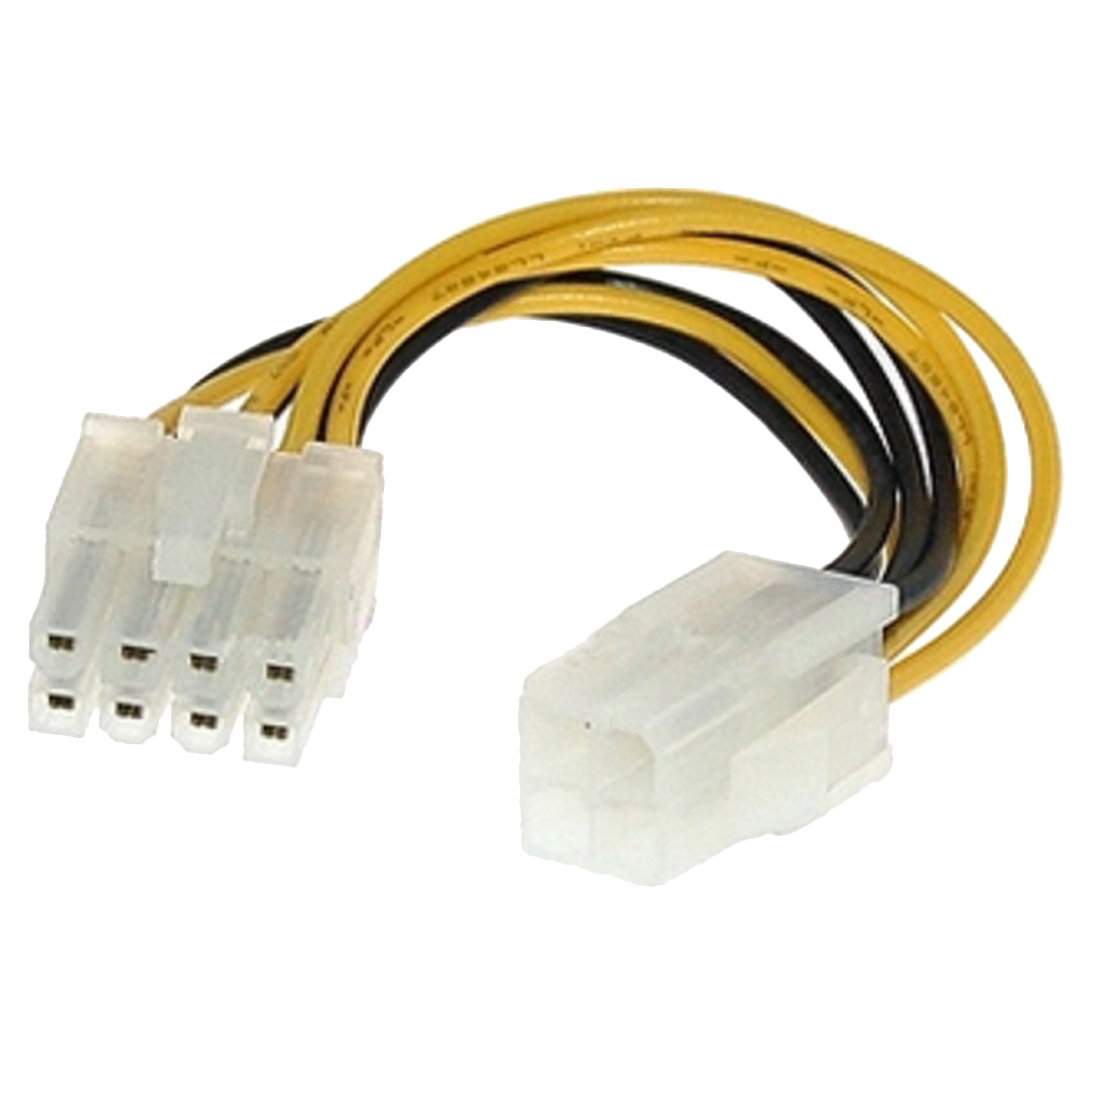 New Computer Cables Professional ATX 4 Pin Male to 8 Pin Female EPS Power Cable Cord Adapter CPU Power Supply Connector-in Computer Cables & Connectors from Computer & Office